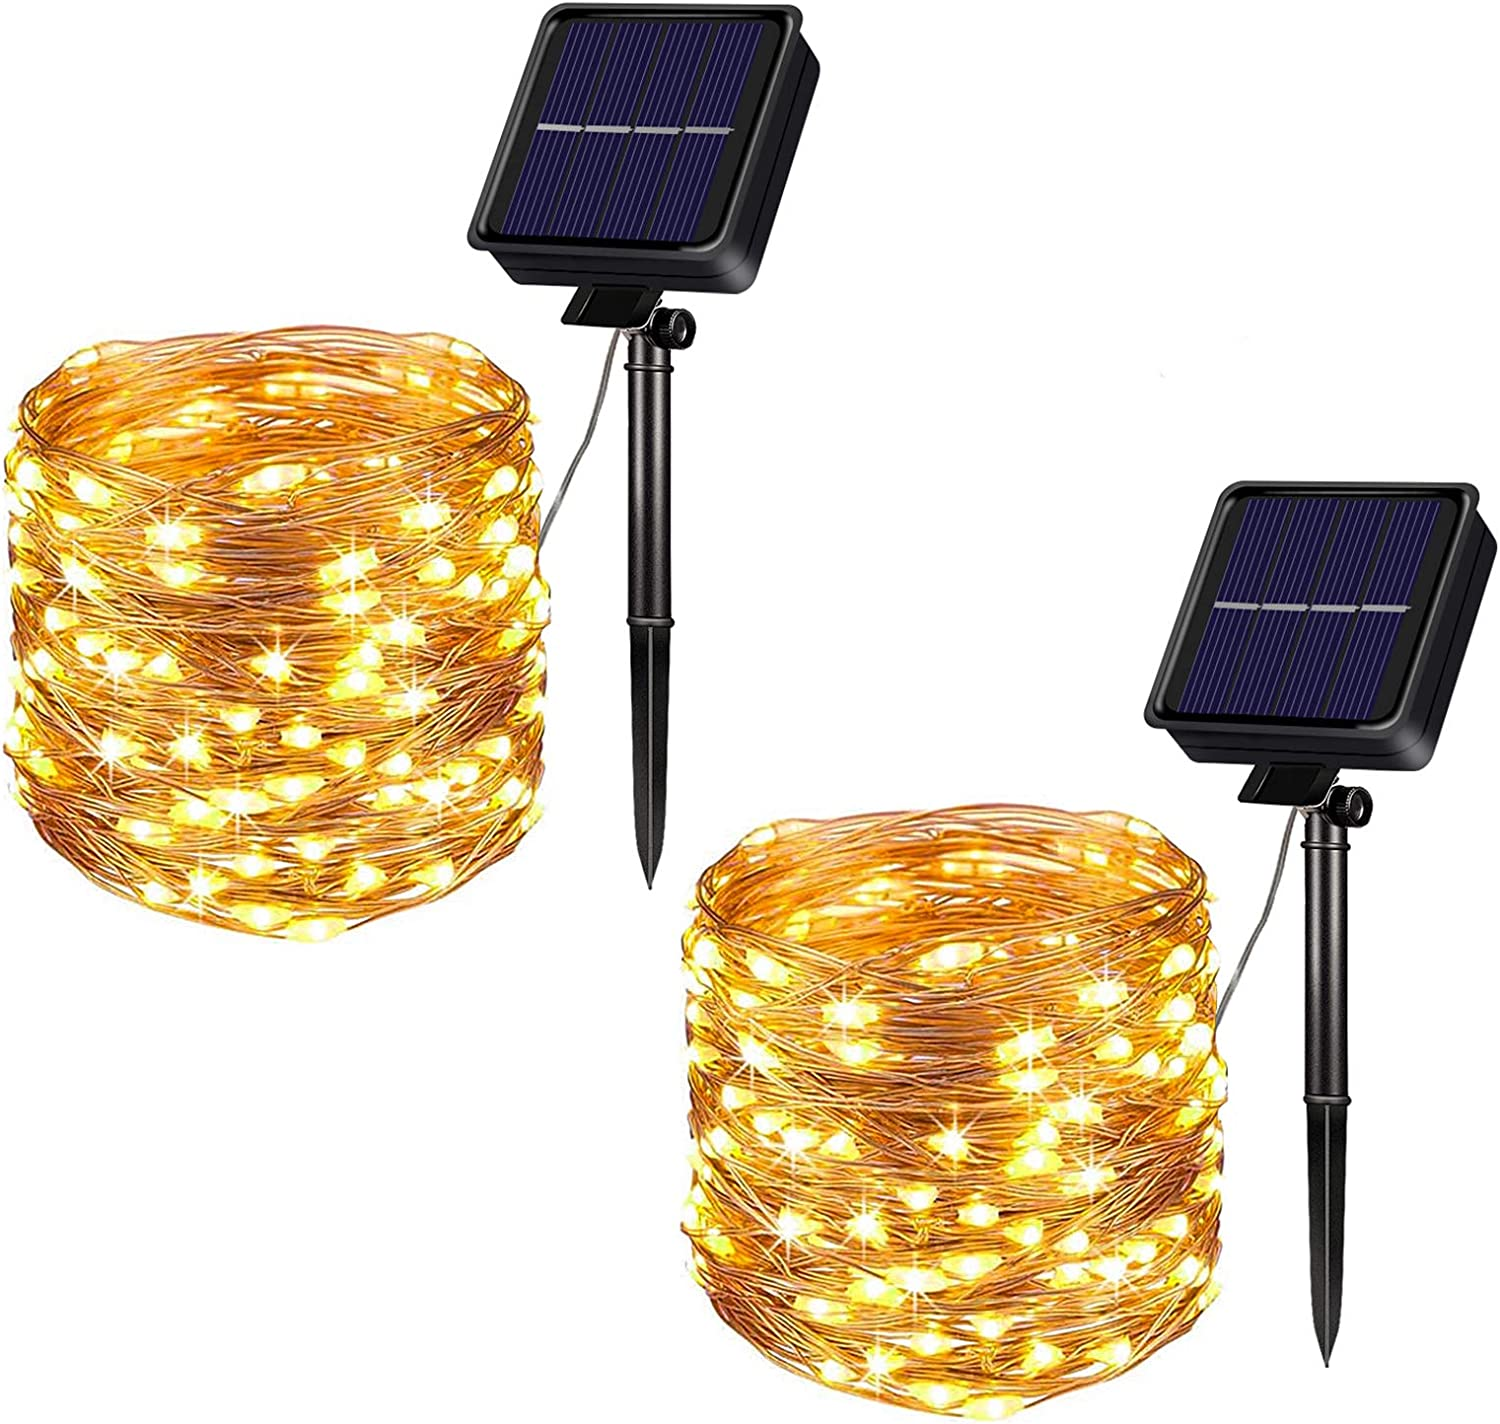 Outdoor Solar String Lights, 2Pack 33FT 100 LEDs Solar Fairy Lights Waterproof Decoration Copper Wire Lights with 8 Modes for Indoor Outdoor Patio Yard Trees Christmas Wedding Party Decor (Warm White)